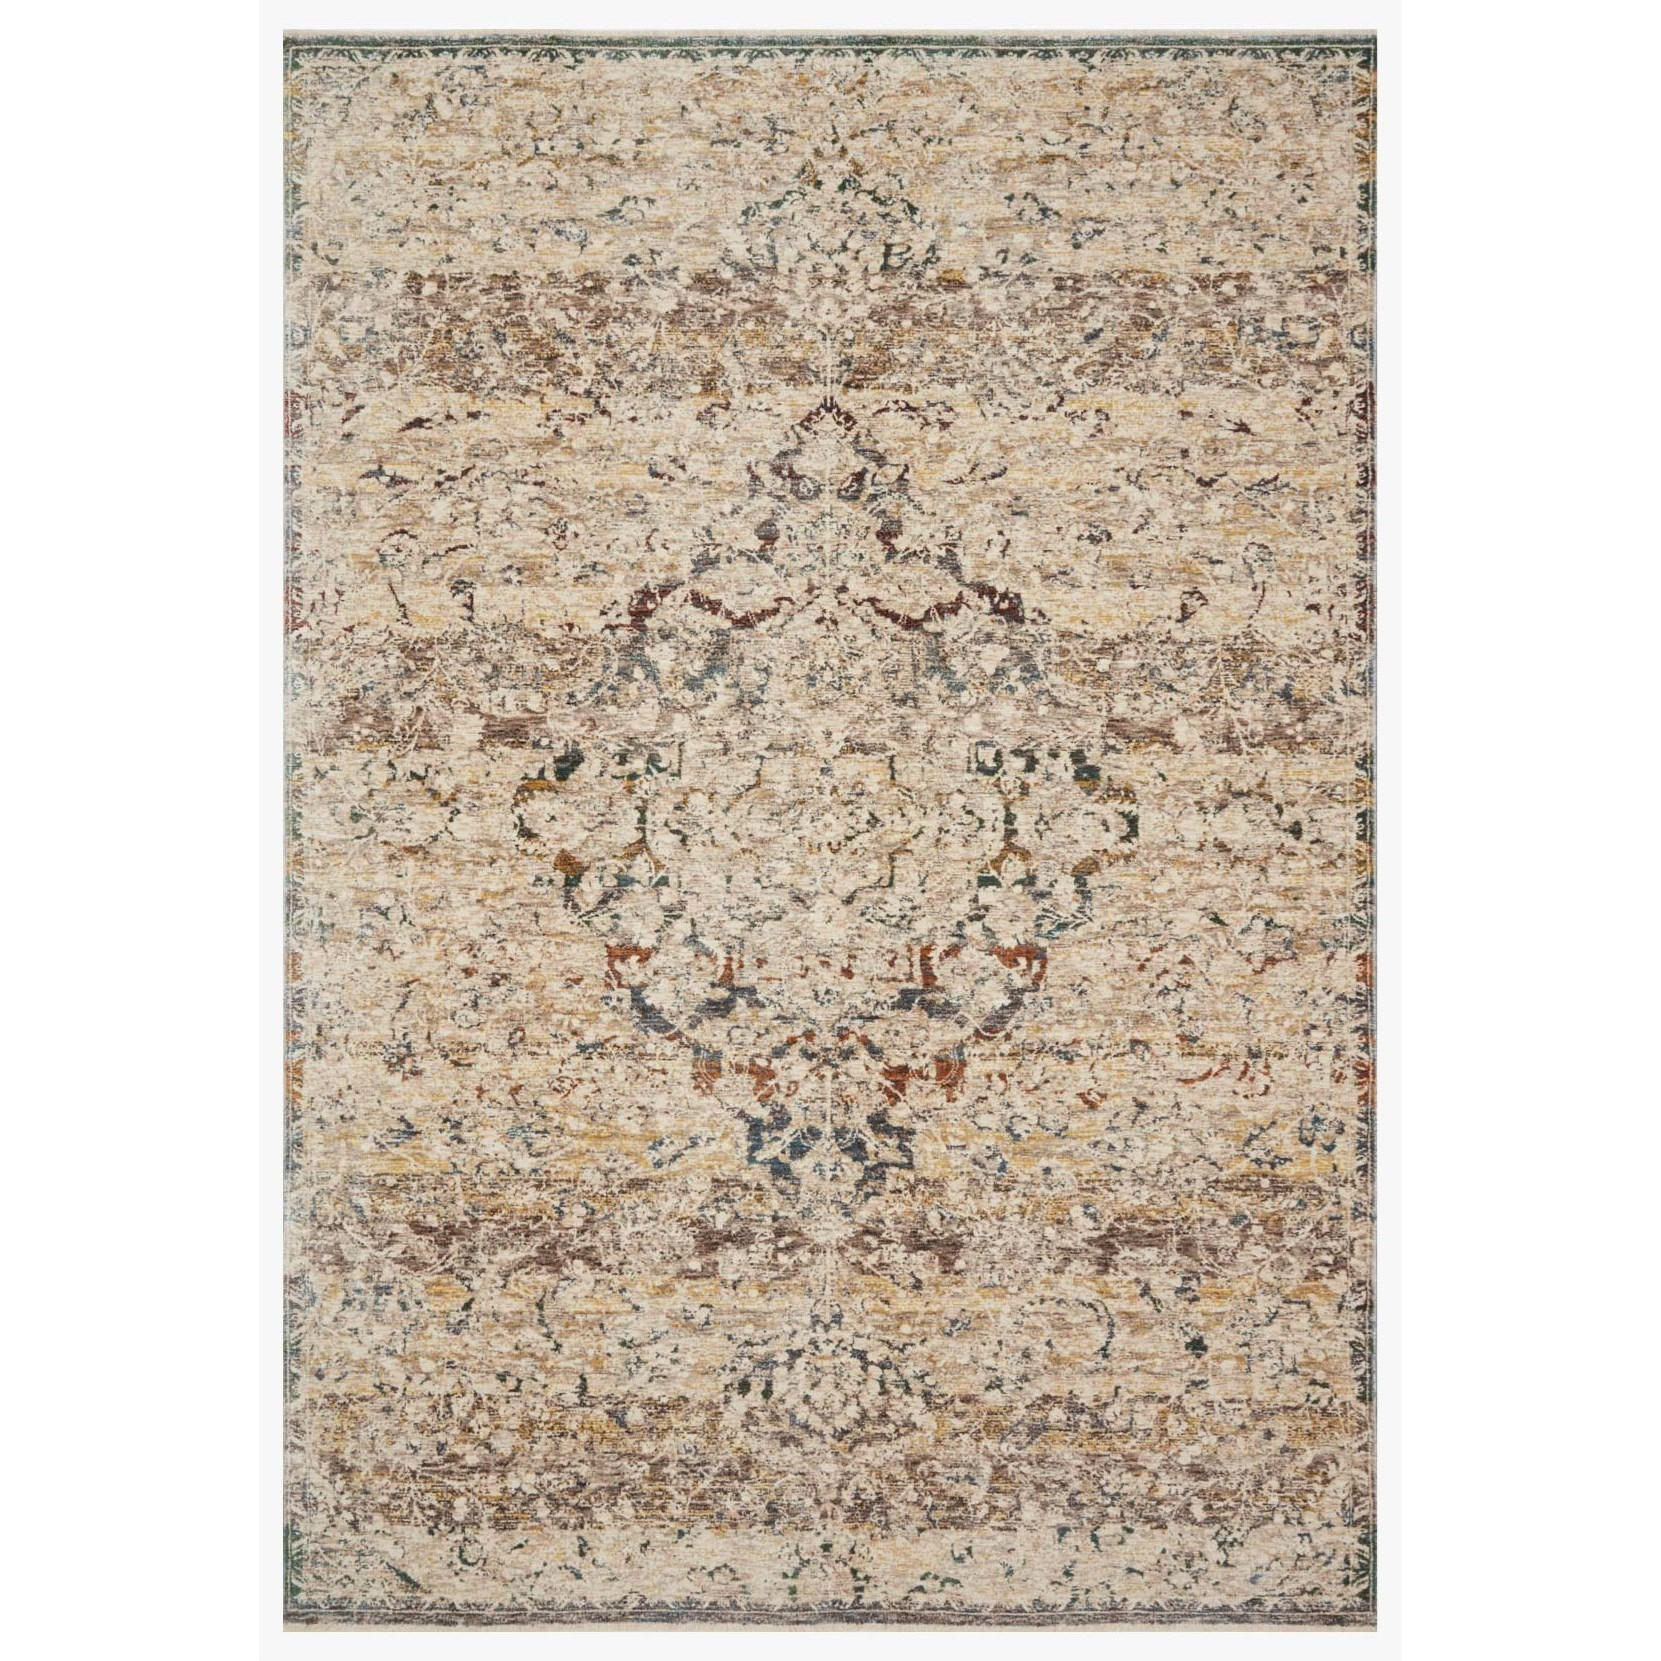 """Lourdes 9'6"""" x 13'1"""" Ivory / Multi Rug by Loloi Rugs at Virginia Furniture Market"""